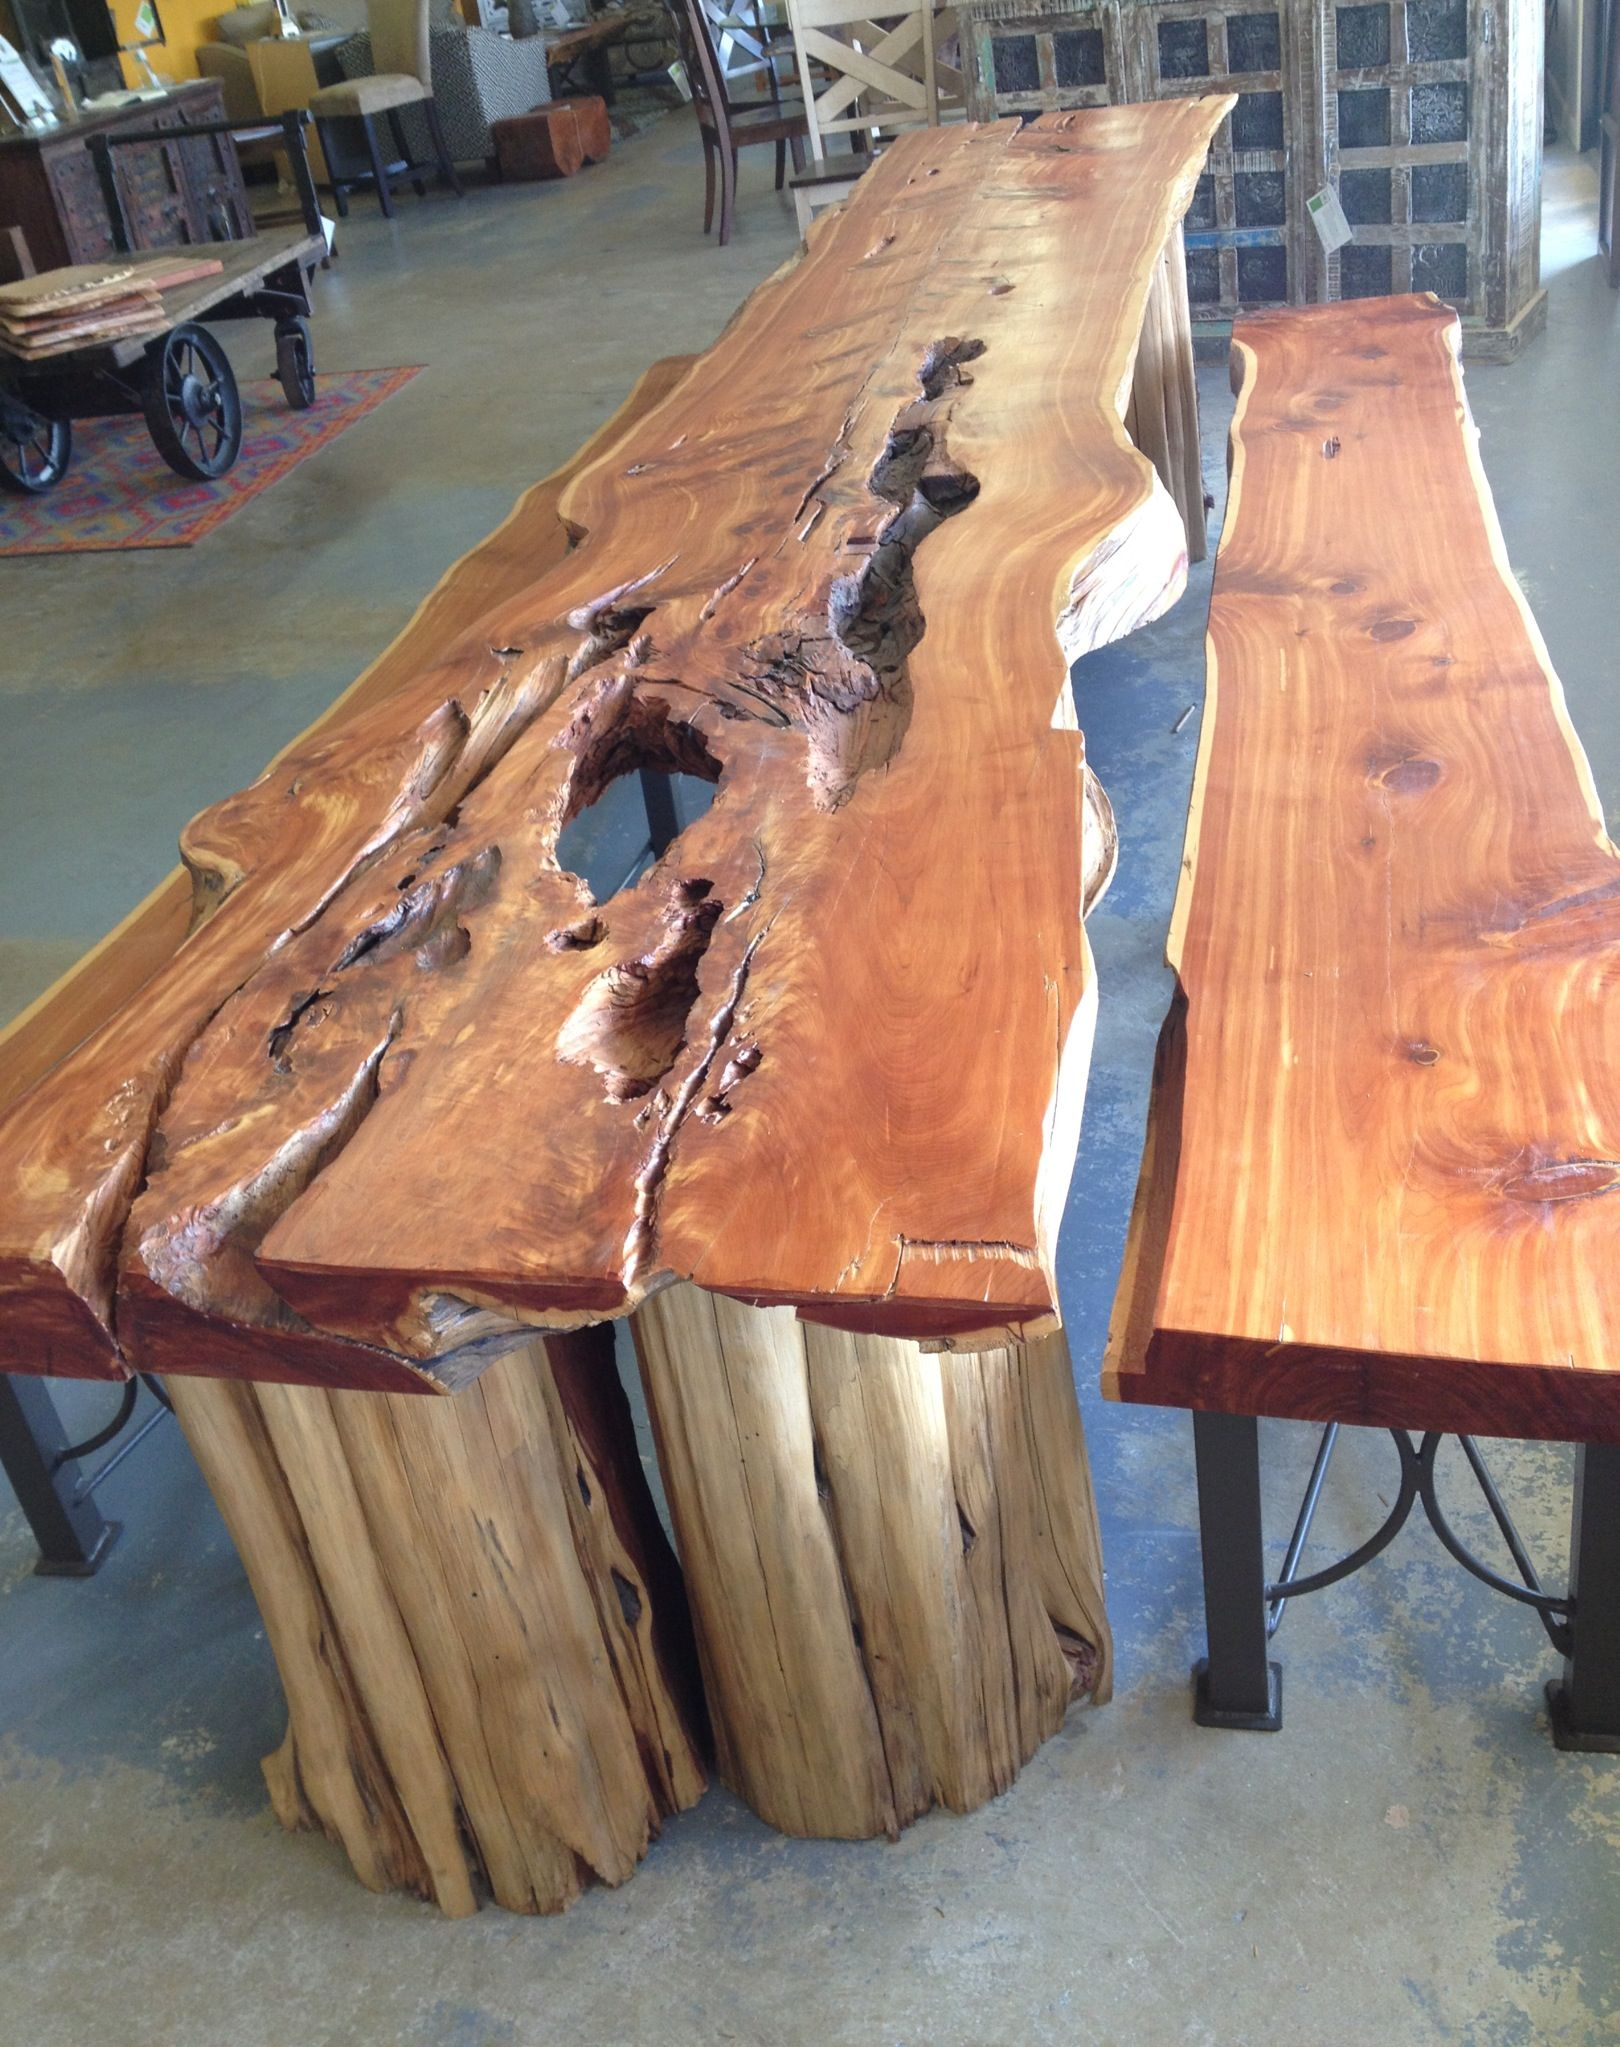 Live Edge Banquet Table Crafted From Solid Cedar Planks